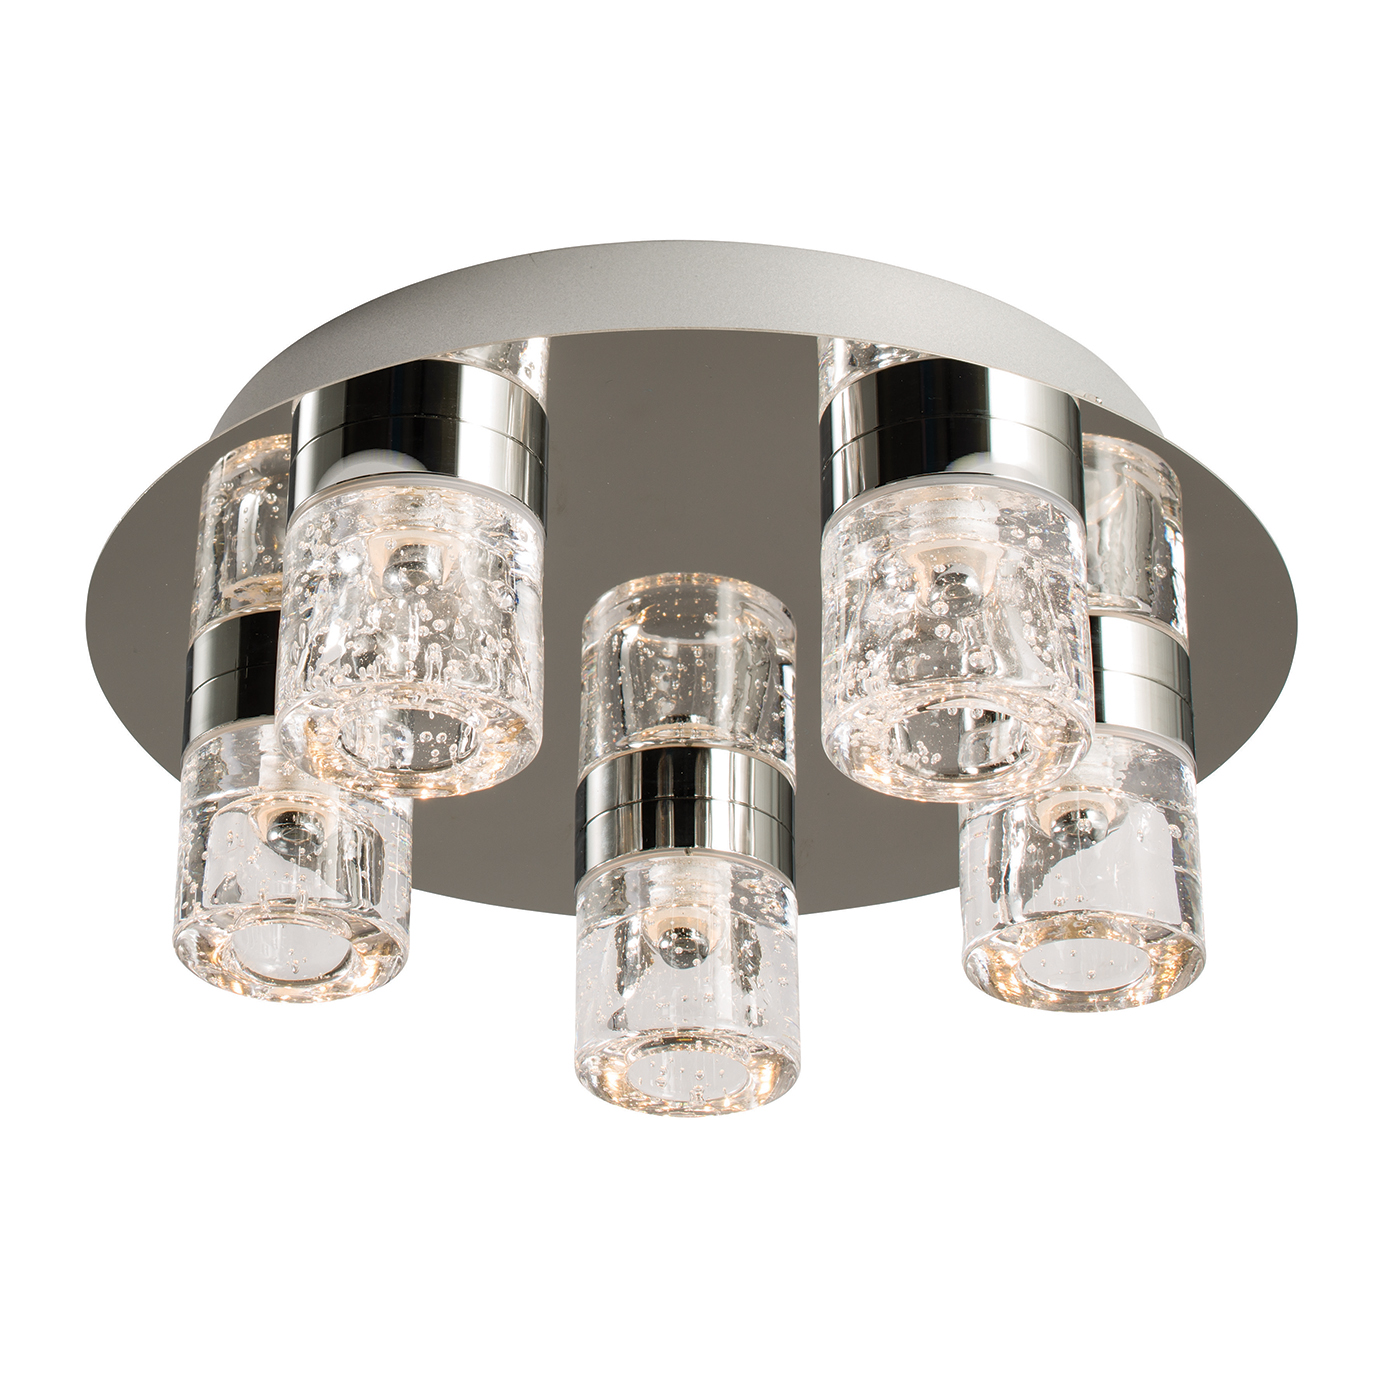 Endon Imperial flush LED bathroom ceiling light IP44 5x 4W chrome glass bubbles Thumbnail 1